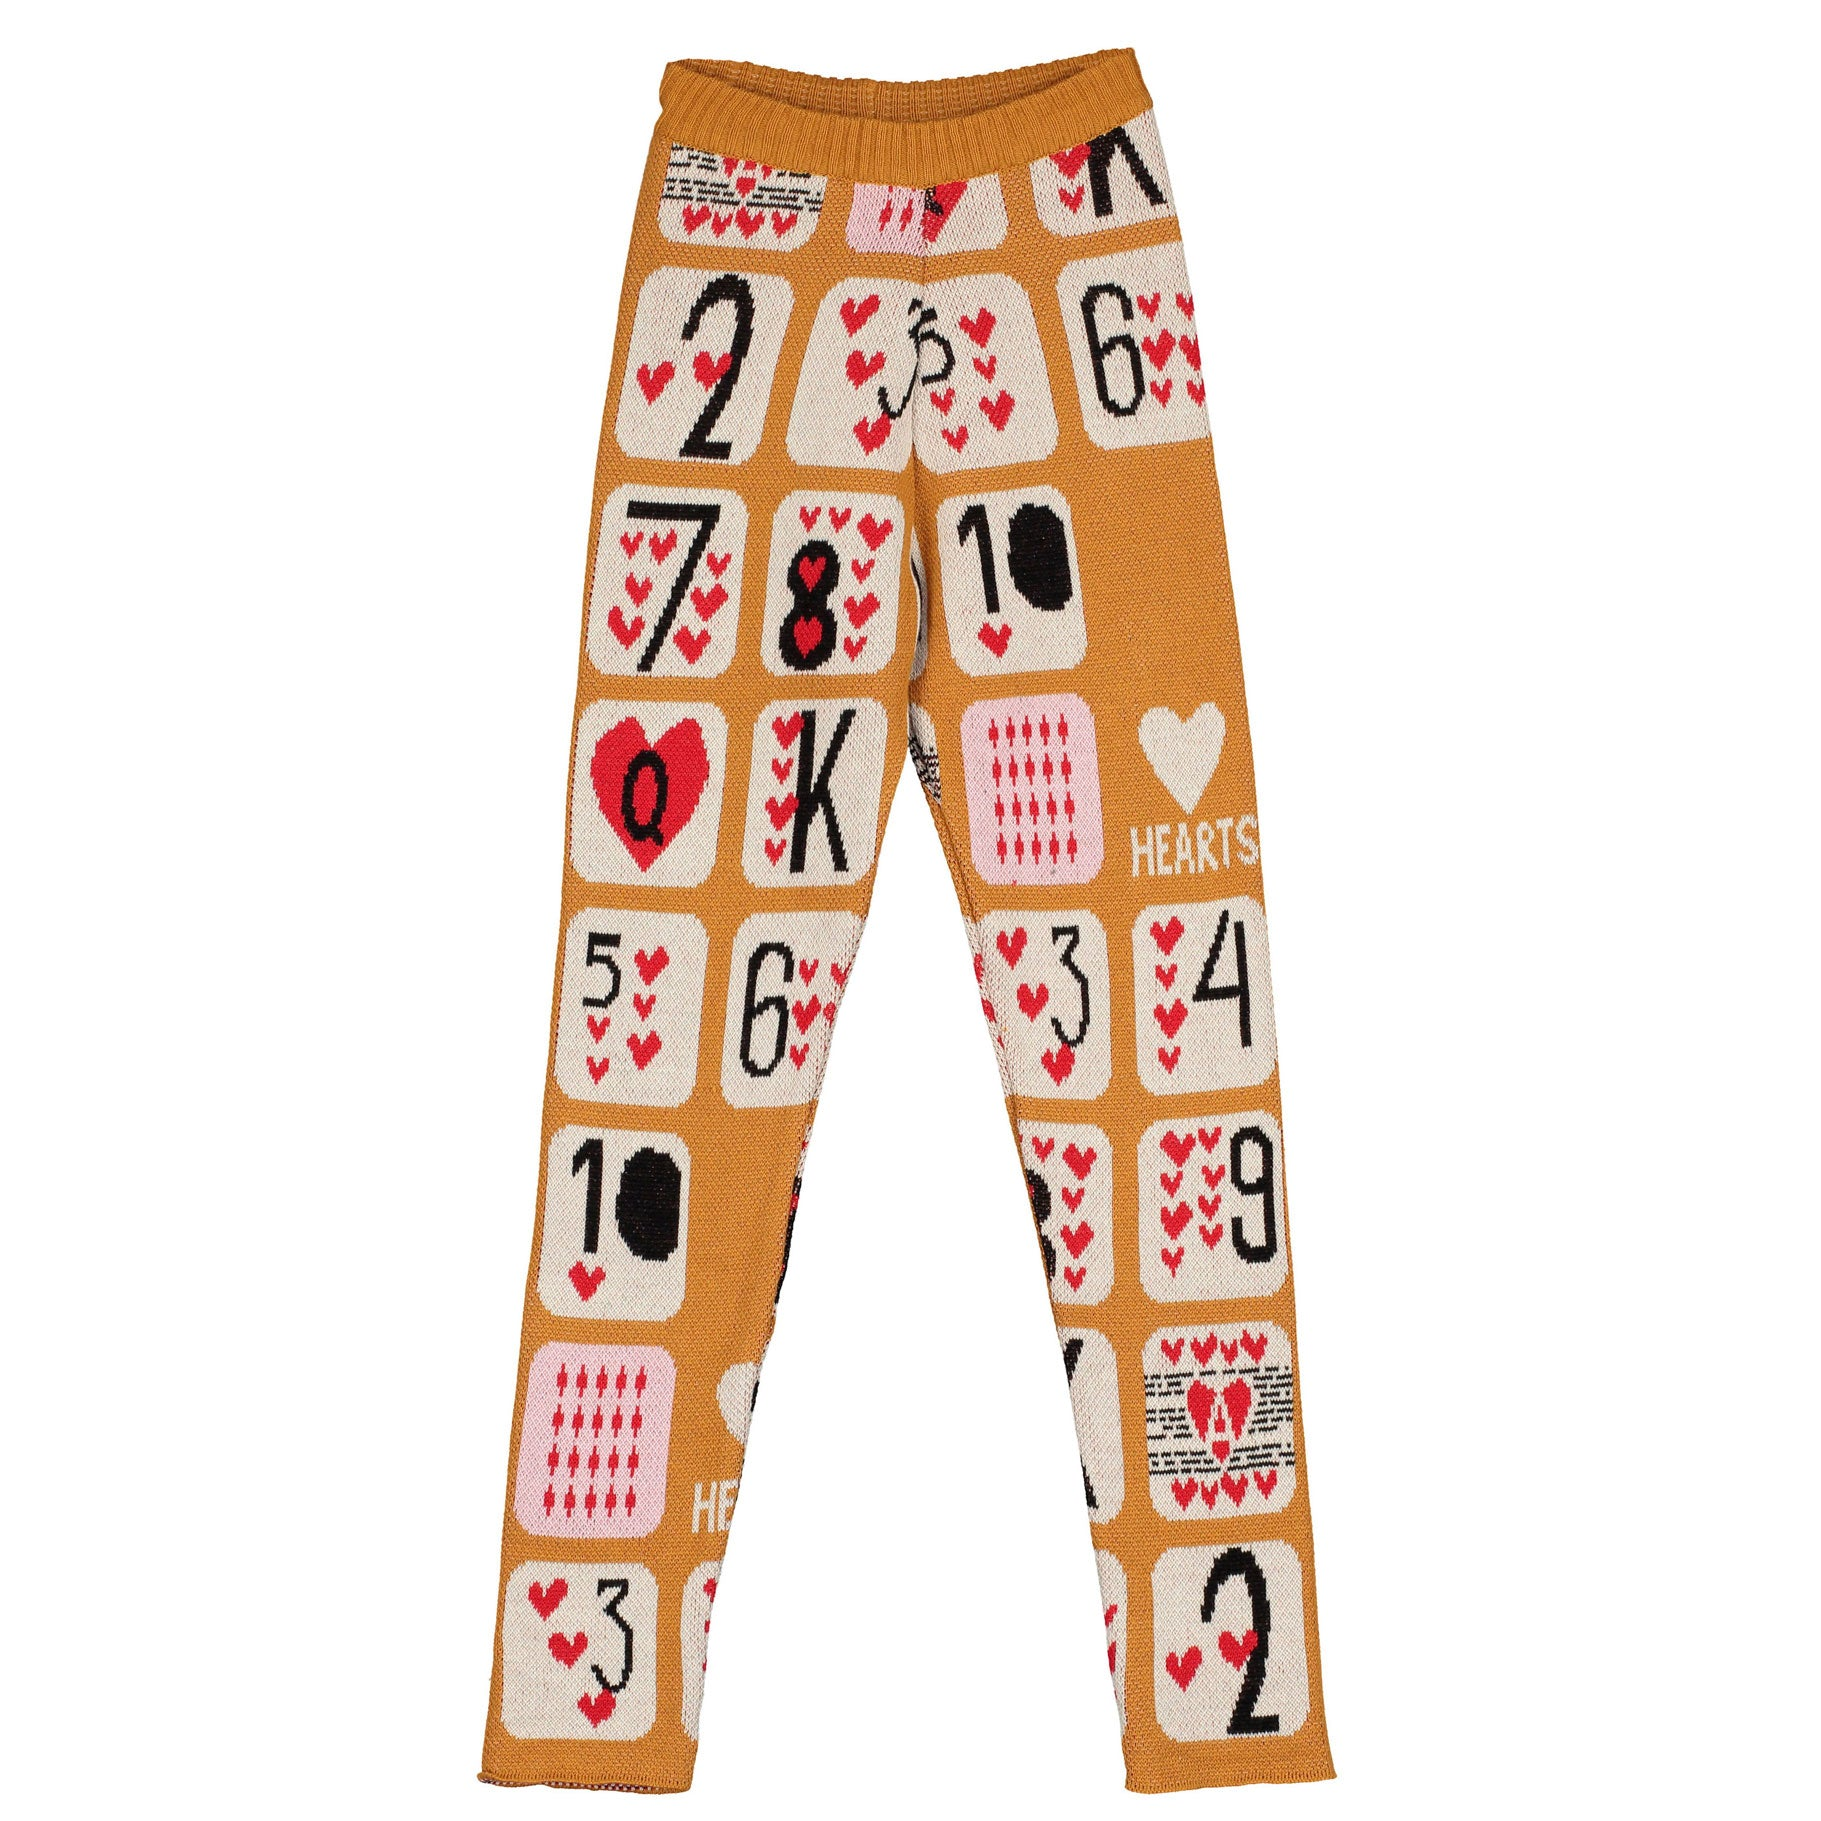 Beau Loves Camel Game of Hearts Knit Leggings